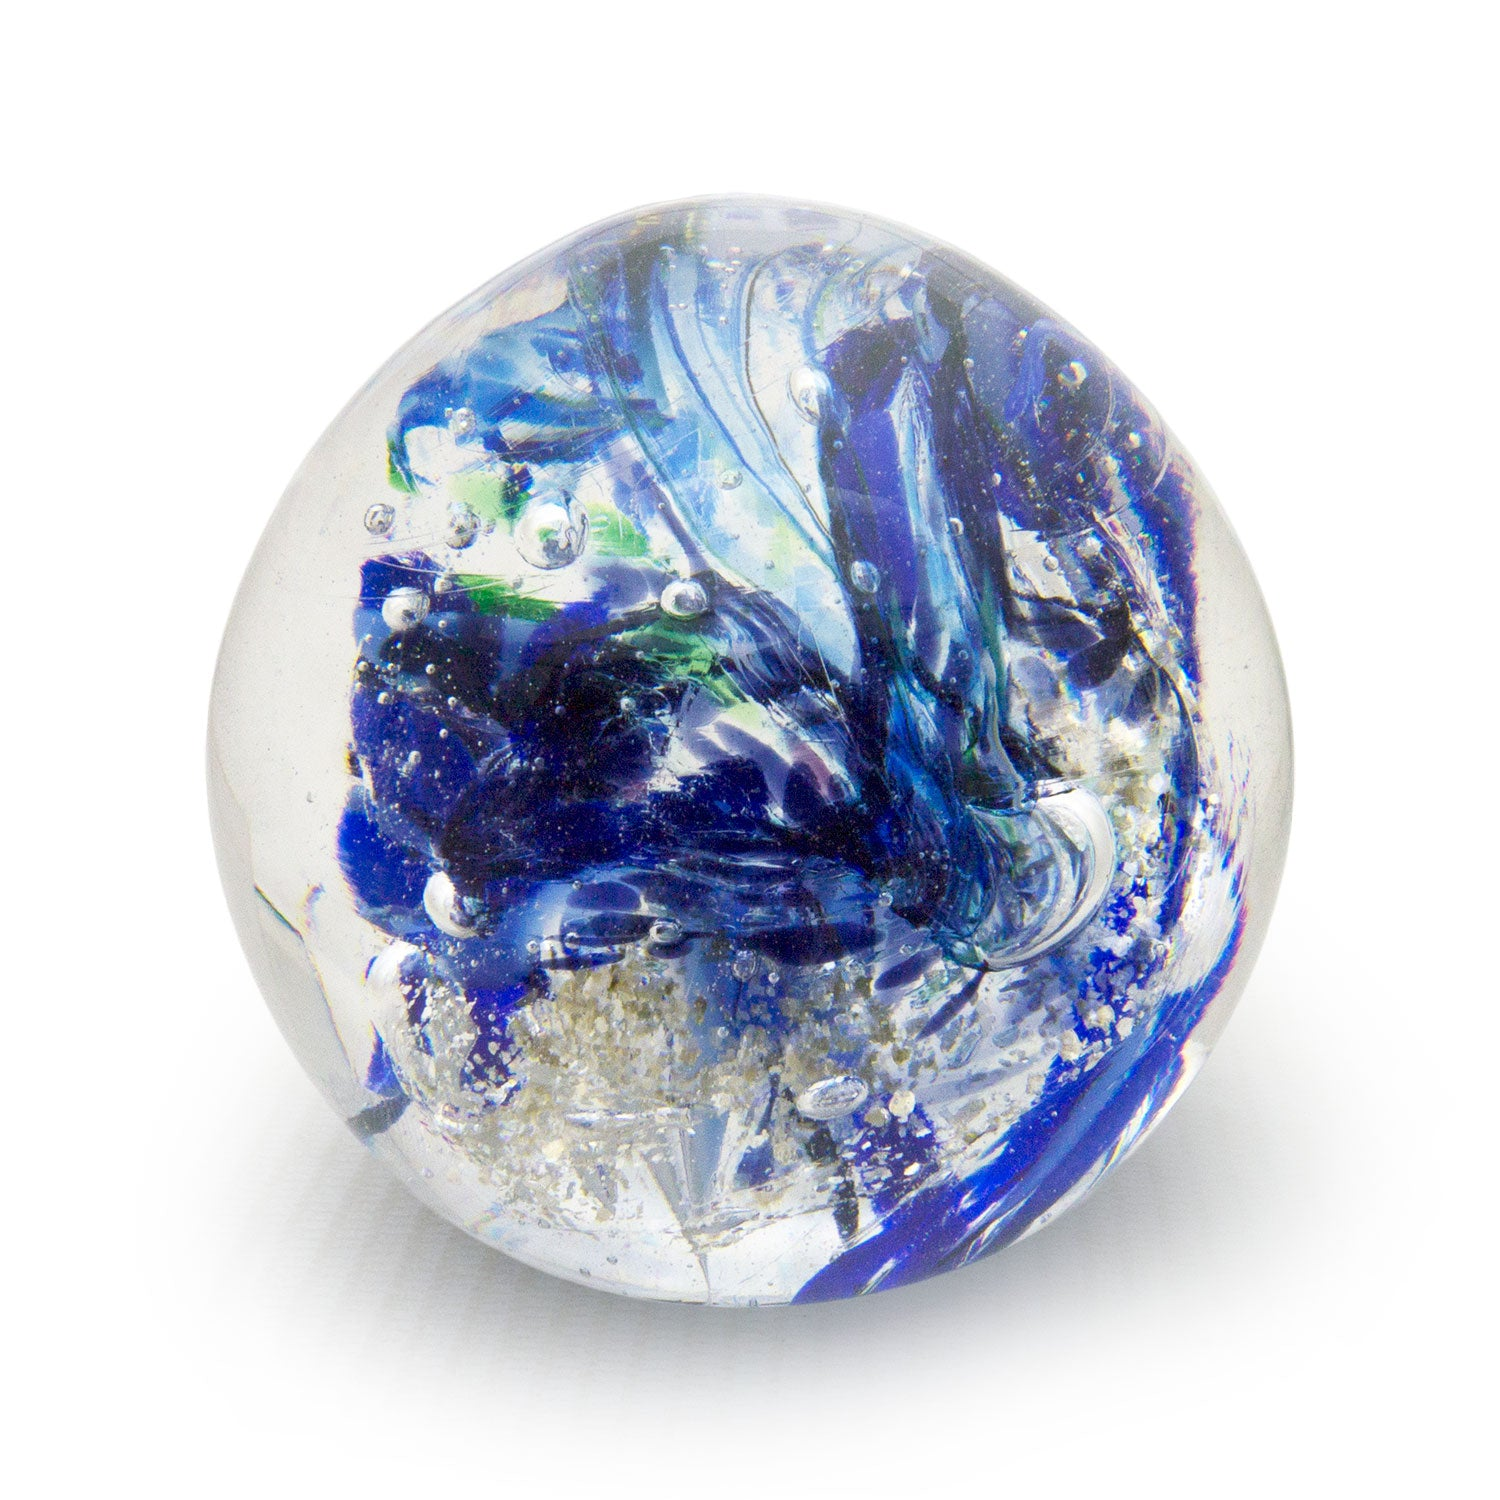 Paperweight Large Blue Chaos - SHAKSPEARE GLASS